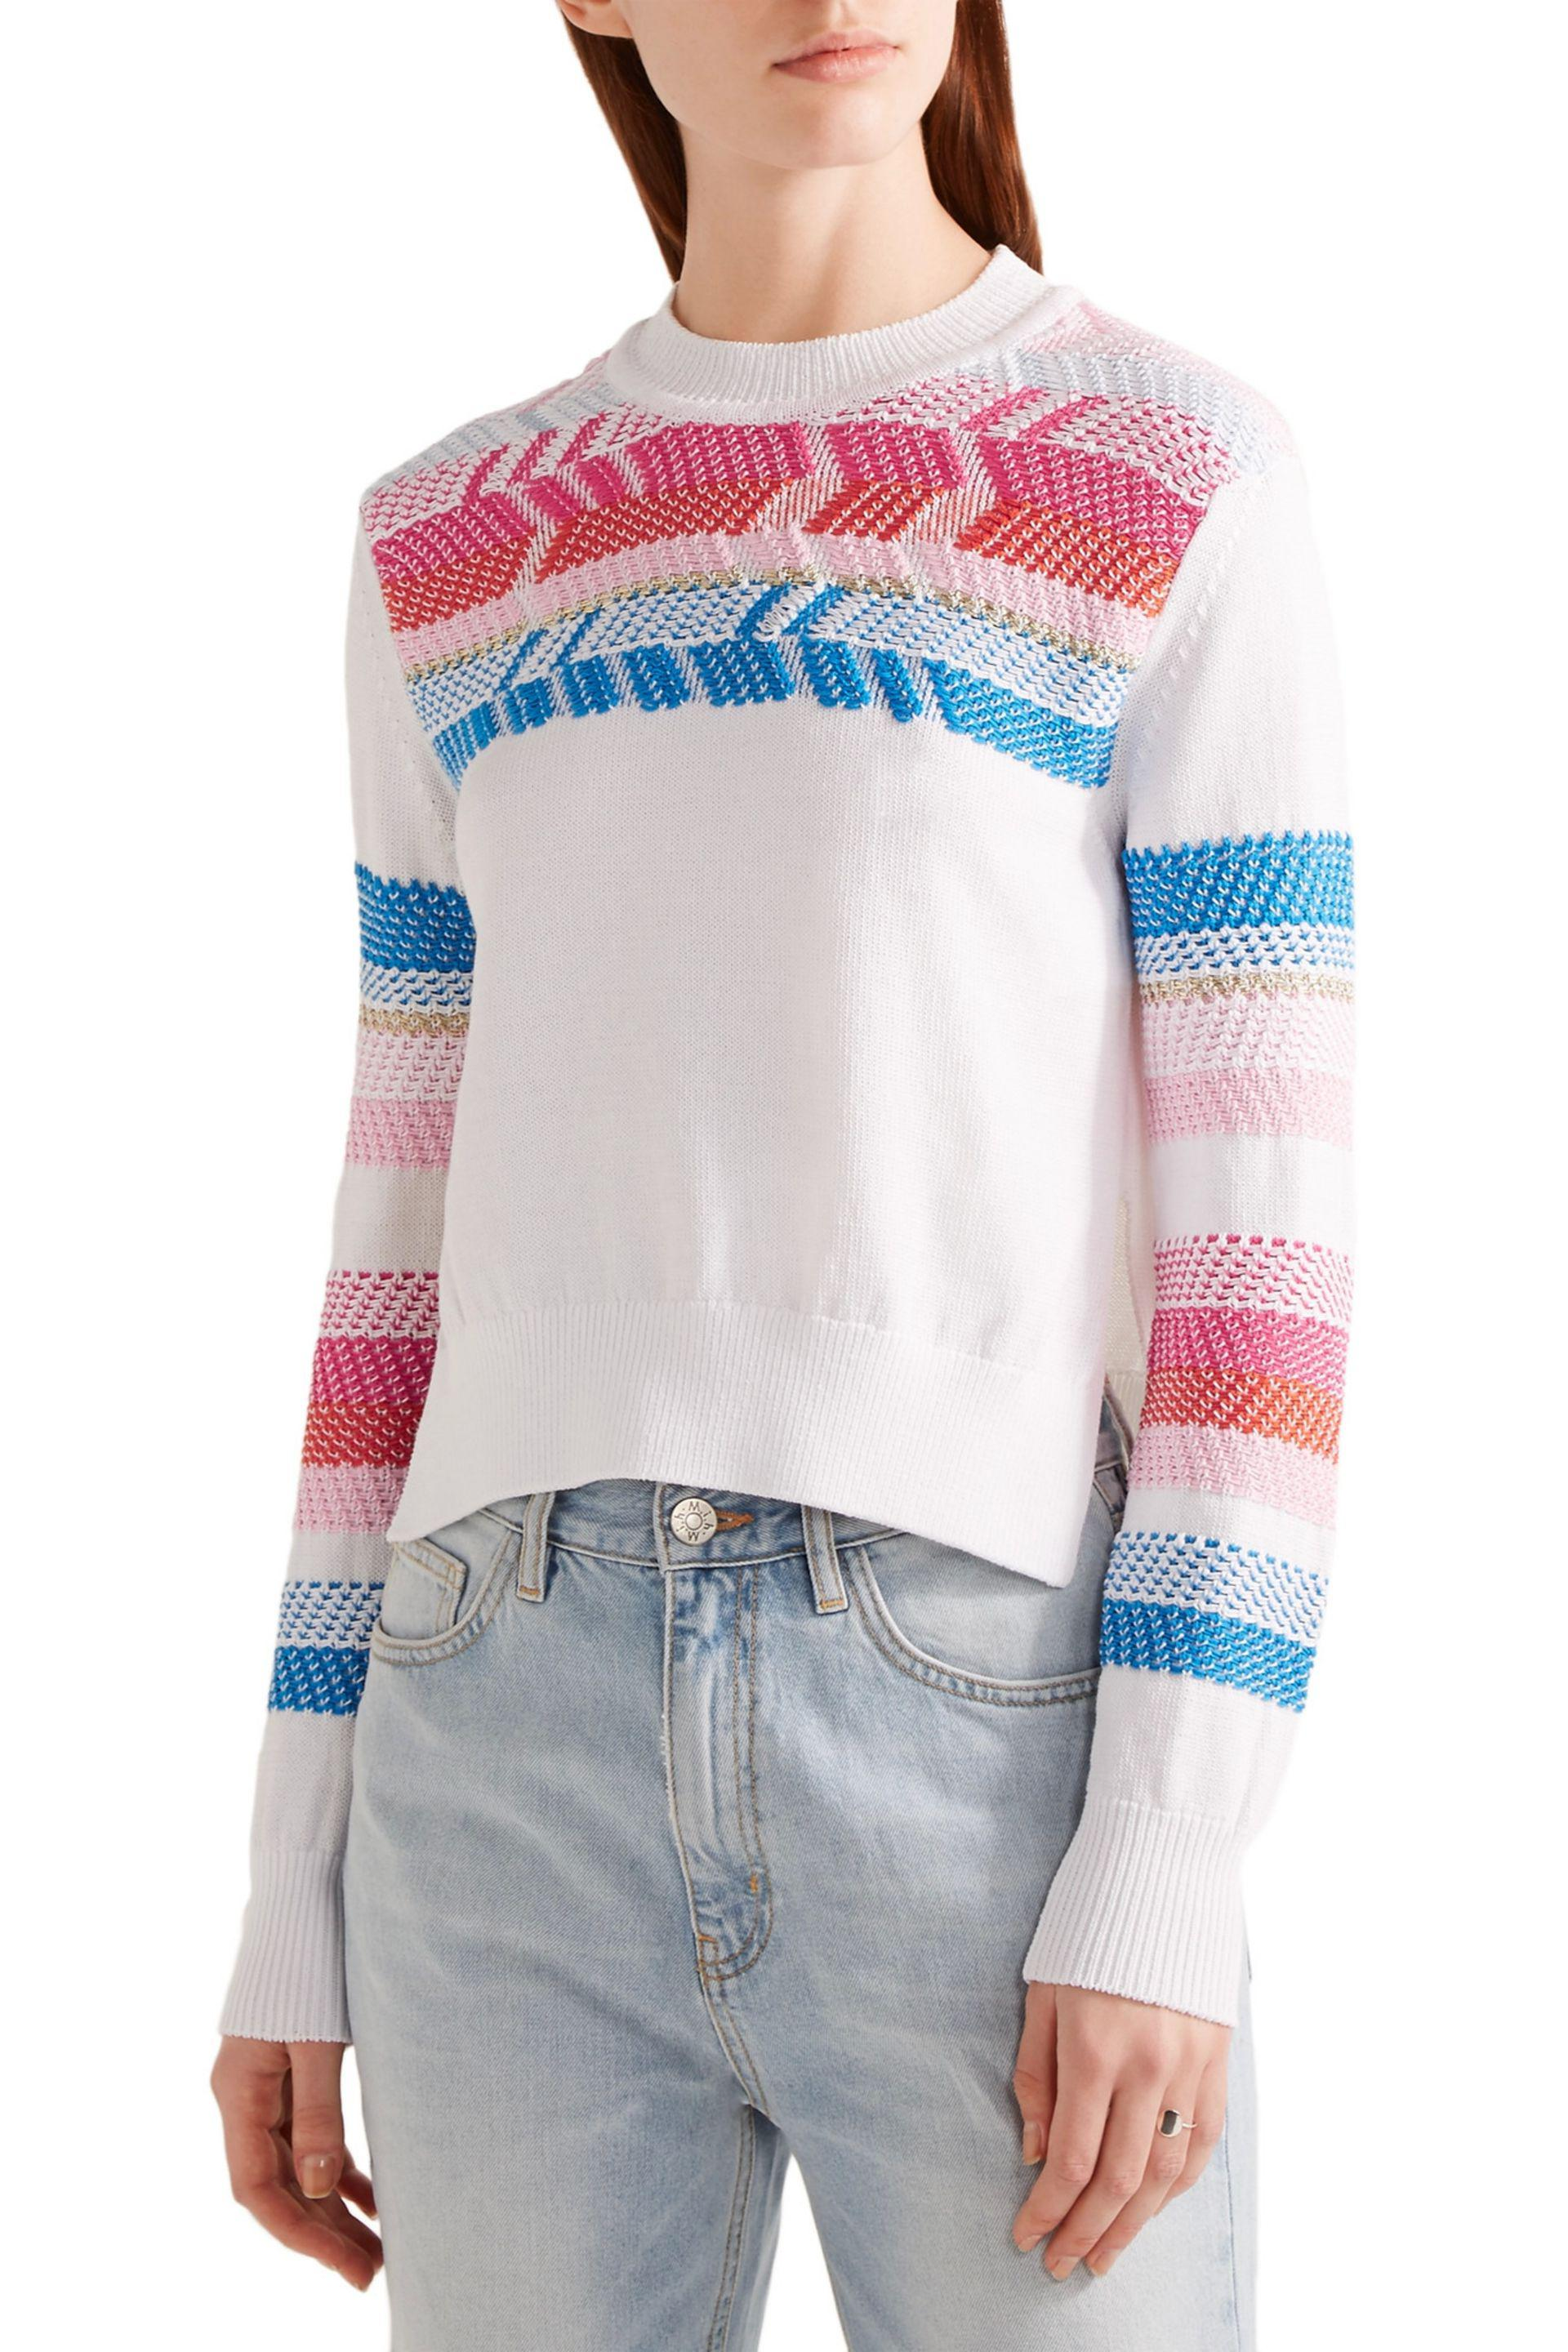 Peter Pilotto Woman Off-the-shoulder Dégradé Open-knit Sweater Pink Size L Peter Pilotto Free Shipping 2018 Clearance With Mastercard From China Free Shipping Low Price Buy Cheap With Mastercard F7SFstig8